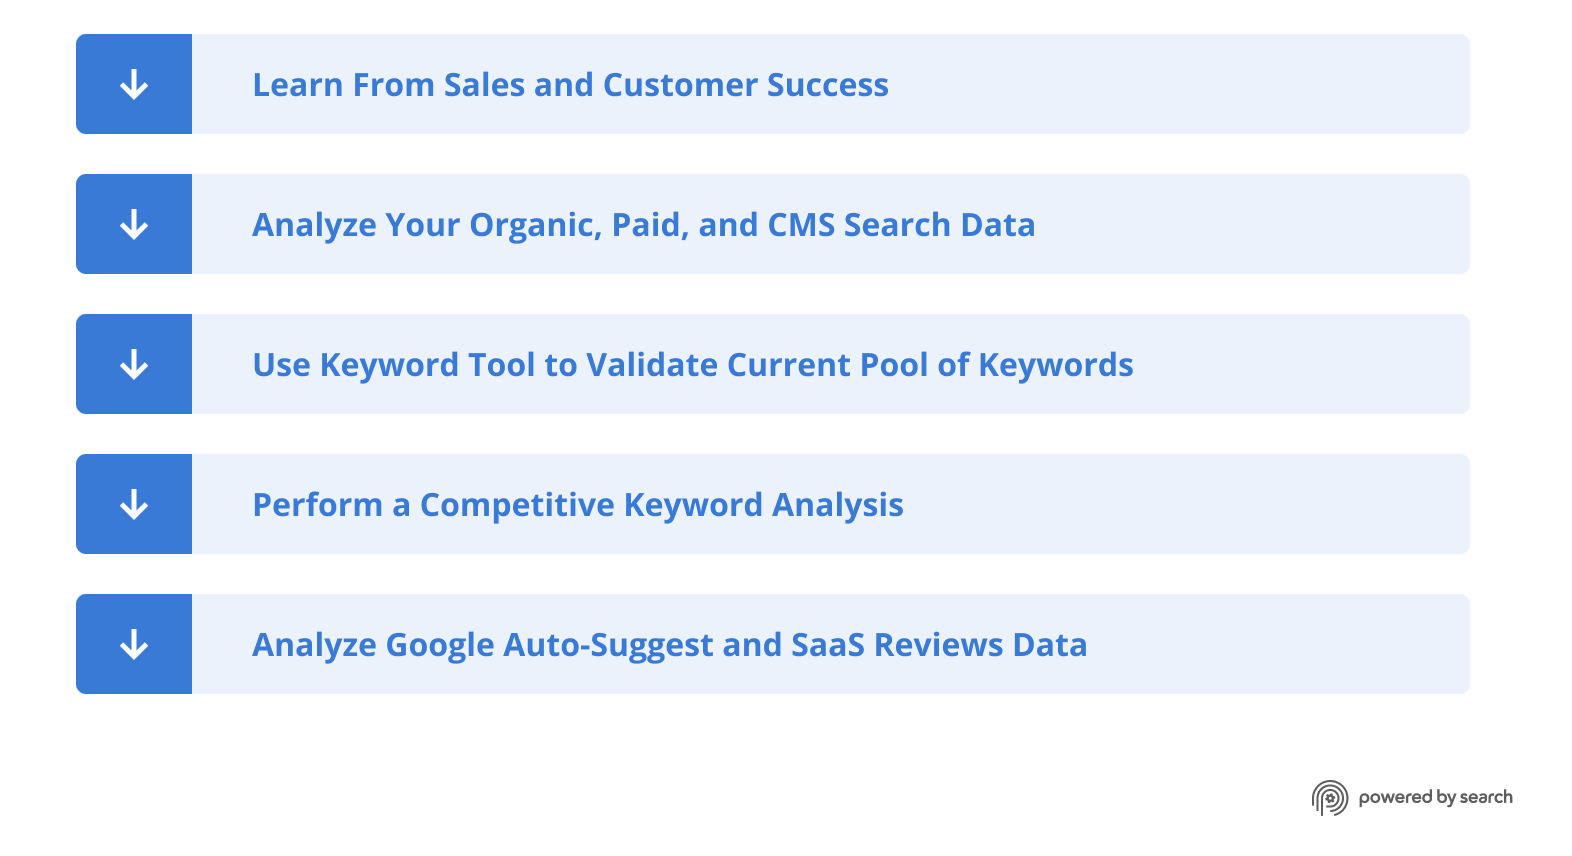 5 step keyword research: 1. Learn From Sales and Customer Success; 2. Analyze Your Organic, Paid, and CMS Search Data, 3. Use Keyword Tool to Validate Current Pool of Keywords; 4. Perform a Competitive Keyword Analysis; 5. Analyze Google Auto-Suggest and SaaS Review Data